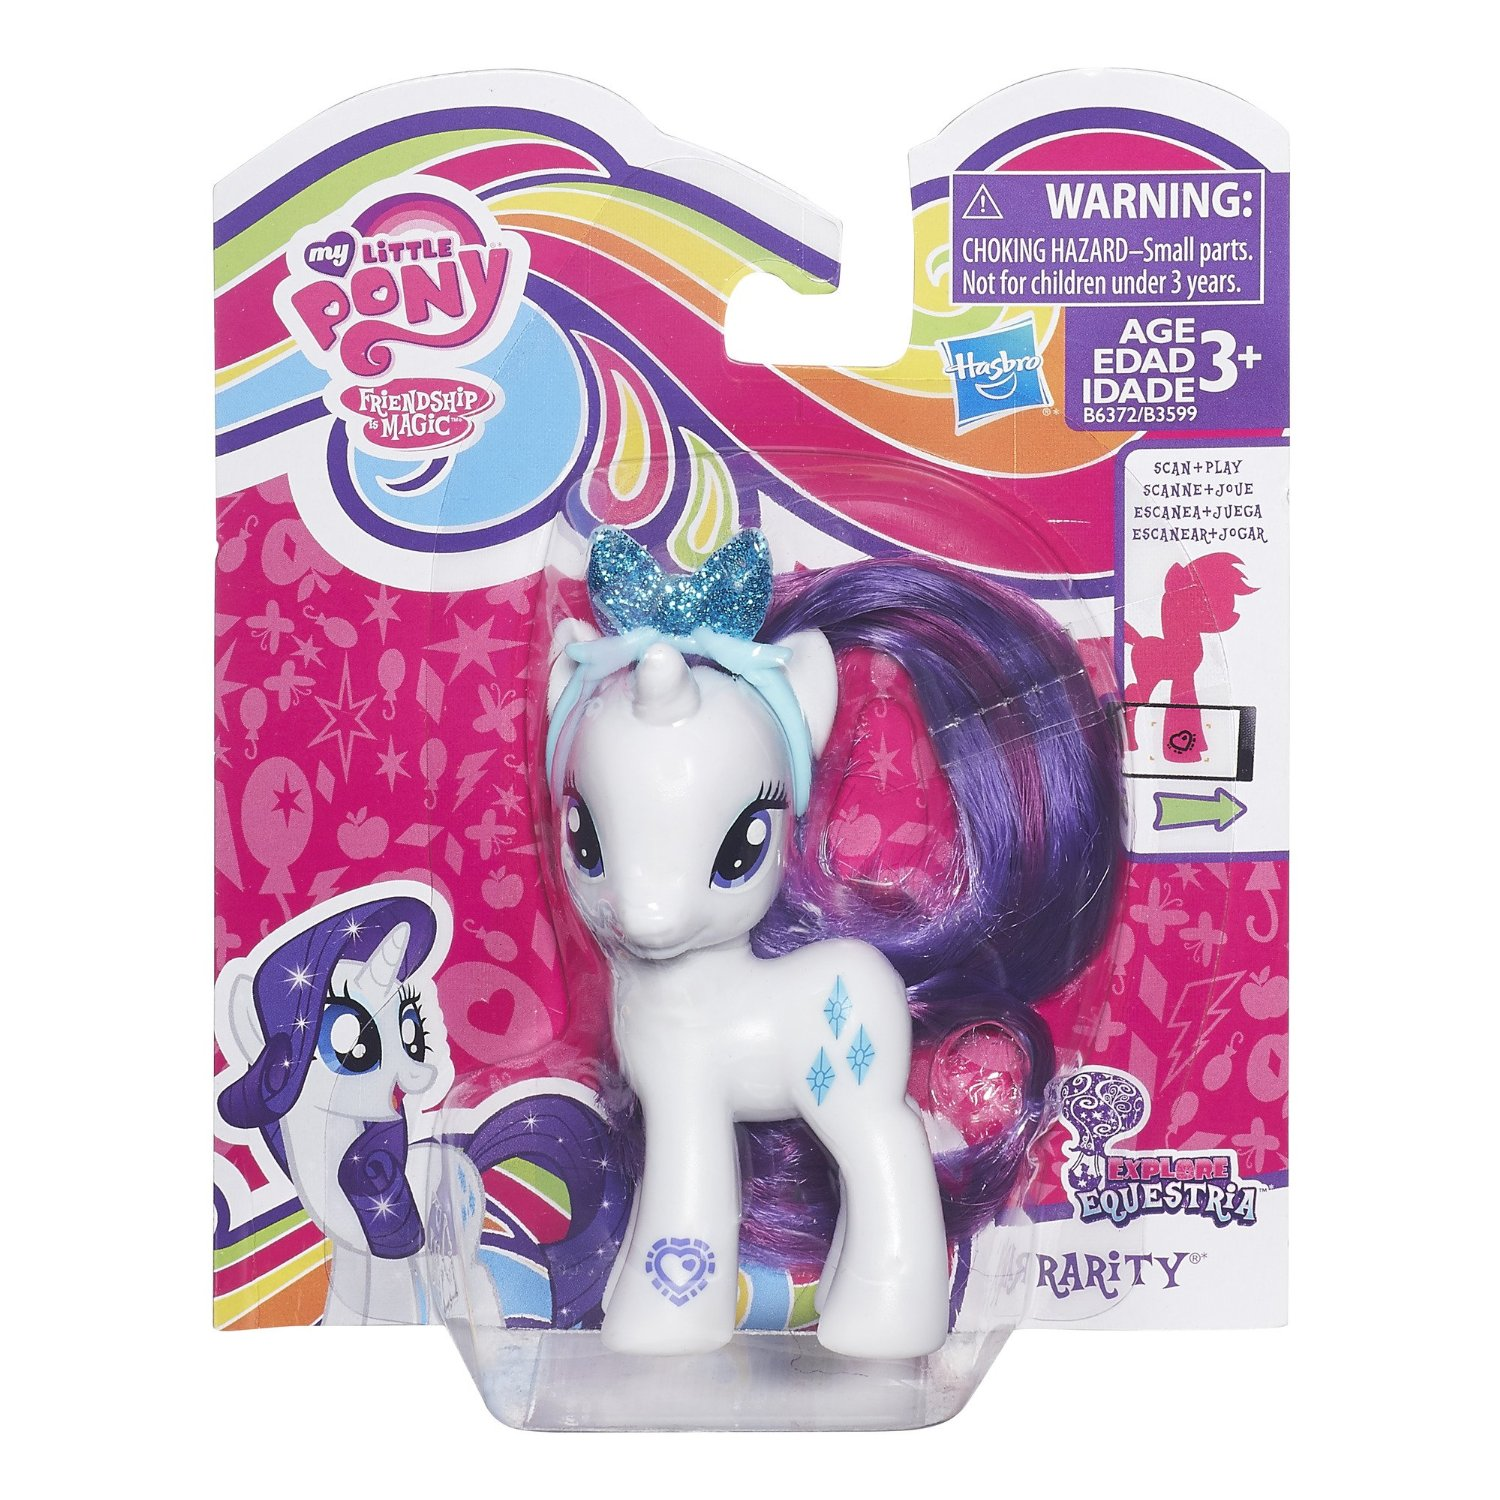 pony singles My little pony merch news: wave 2 of pony friends singles appear on amazon | mlp merch.